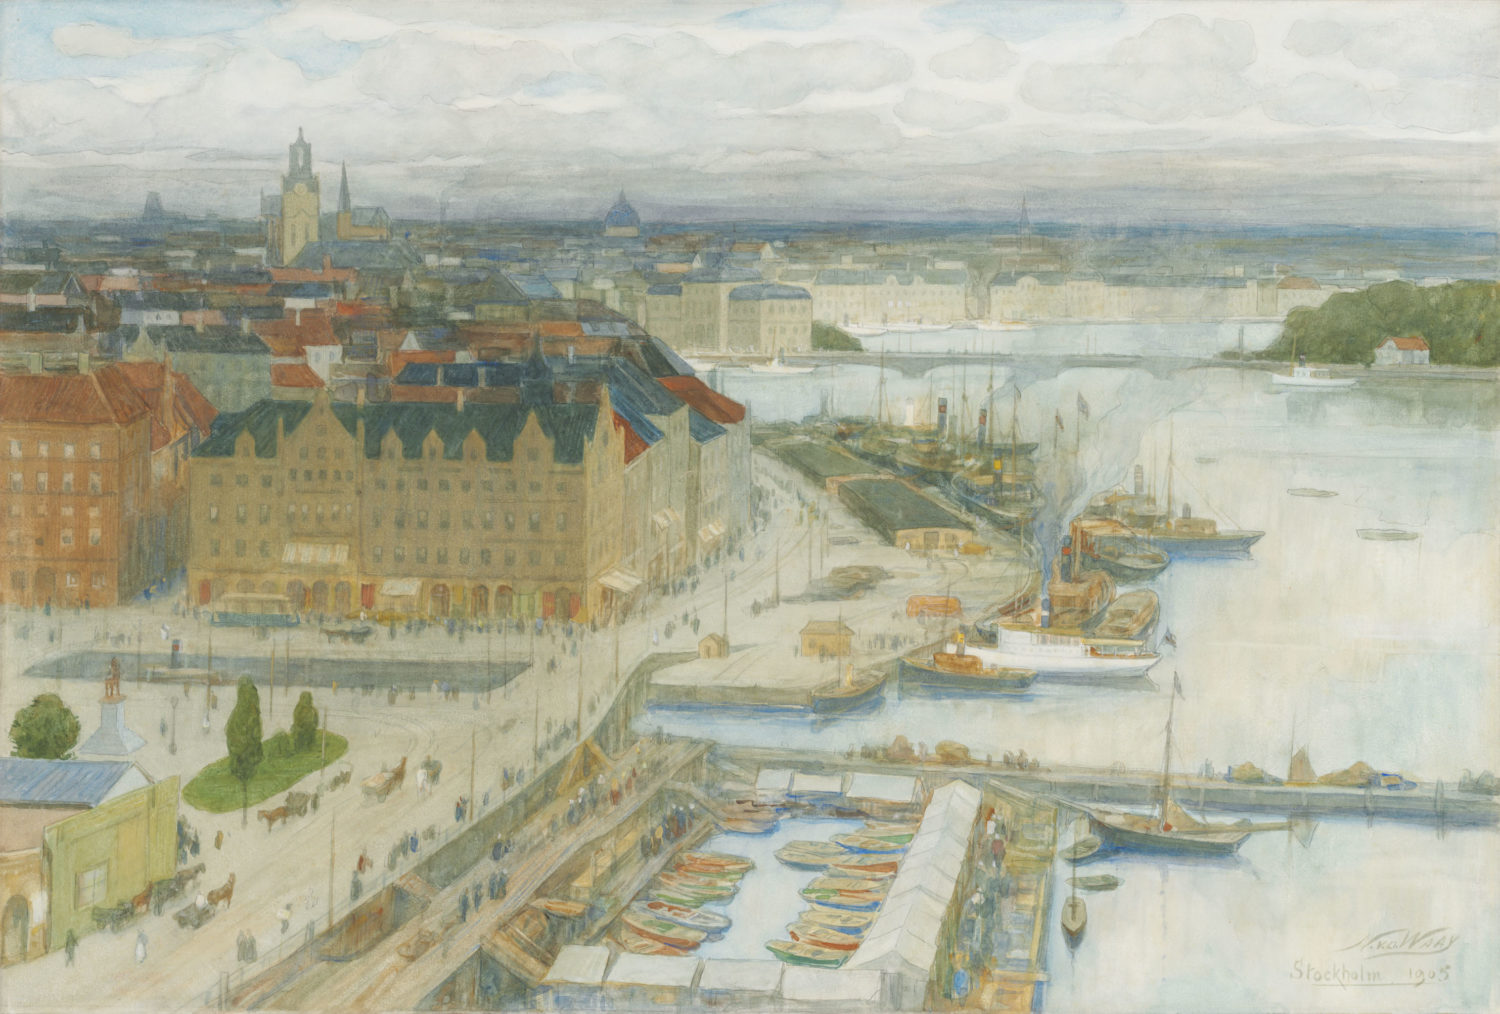 Image | Nicolaas van der Waay | A view of Stockholm, with the Storkyrkan Church in the background